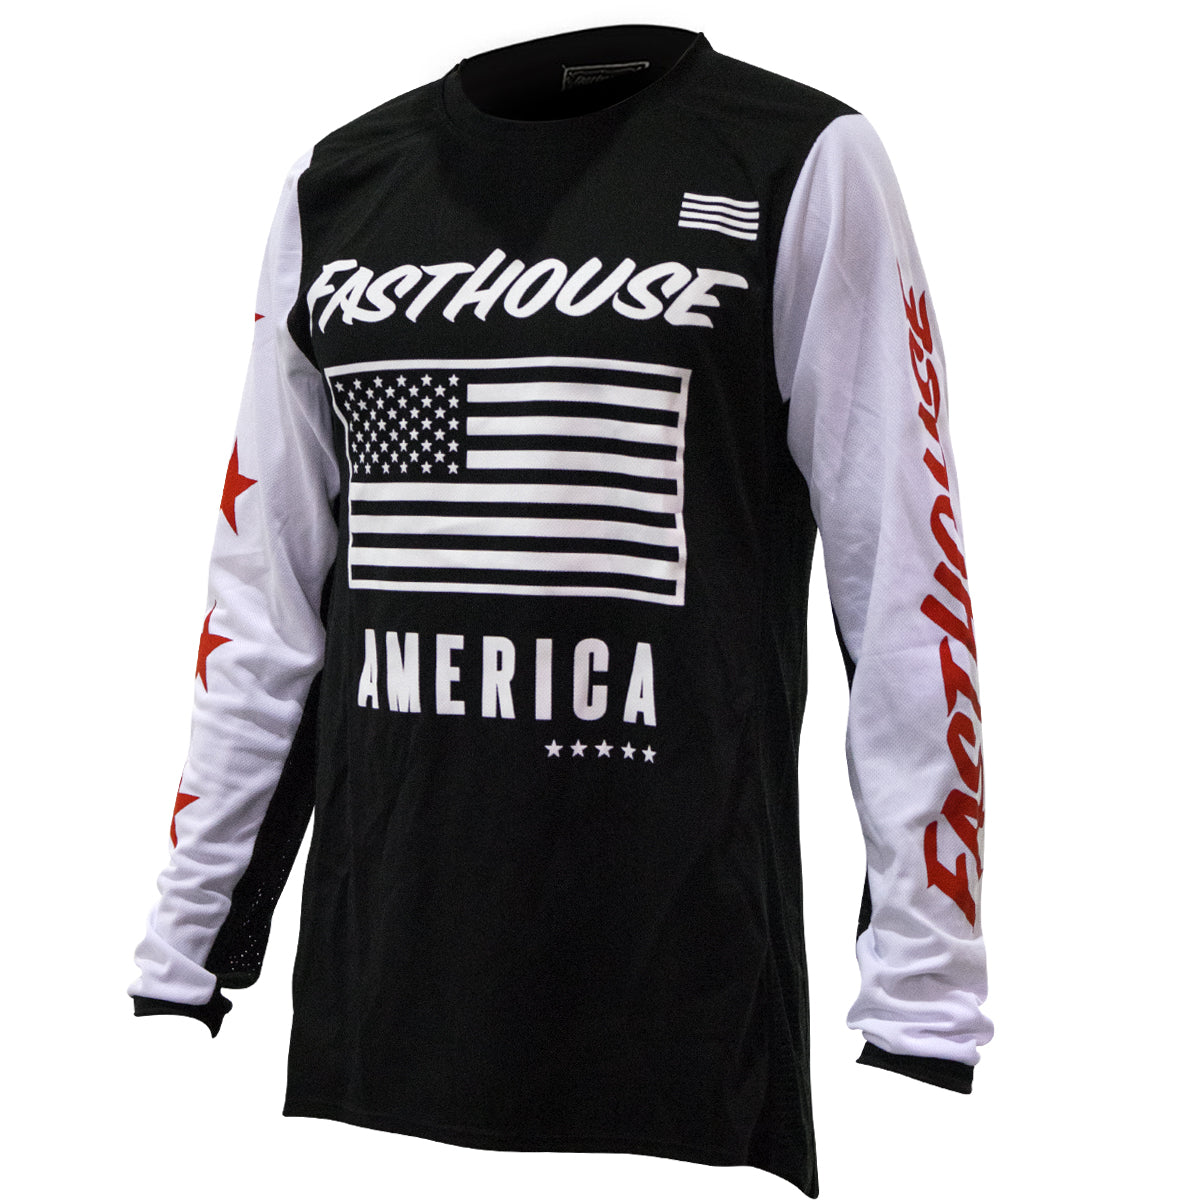 Fasthouse - American Jersey - Black White Red